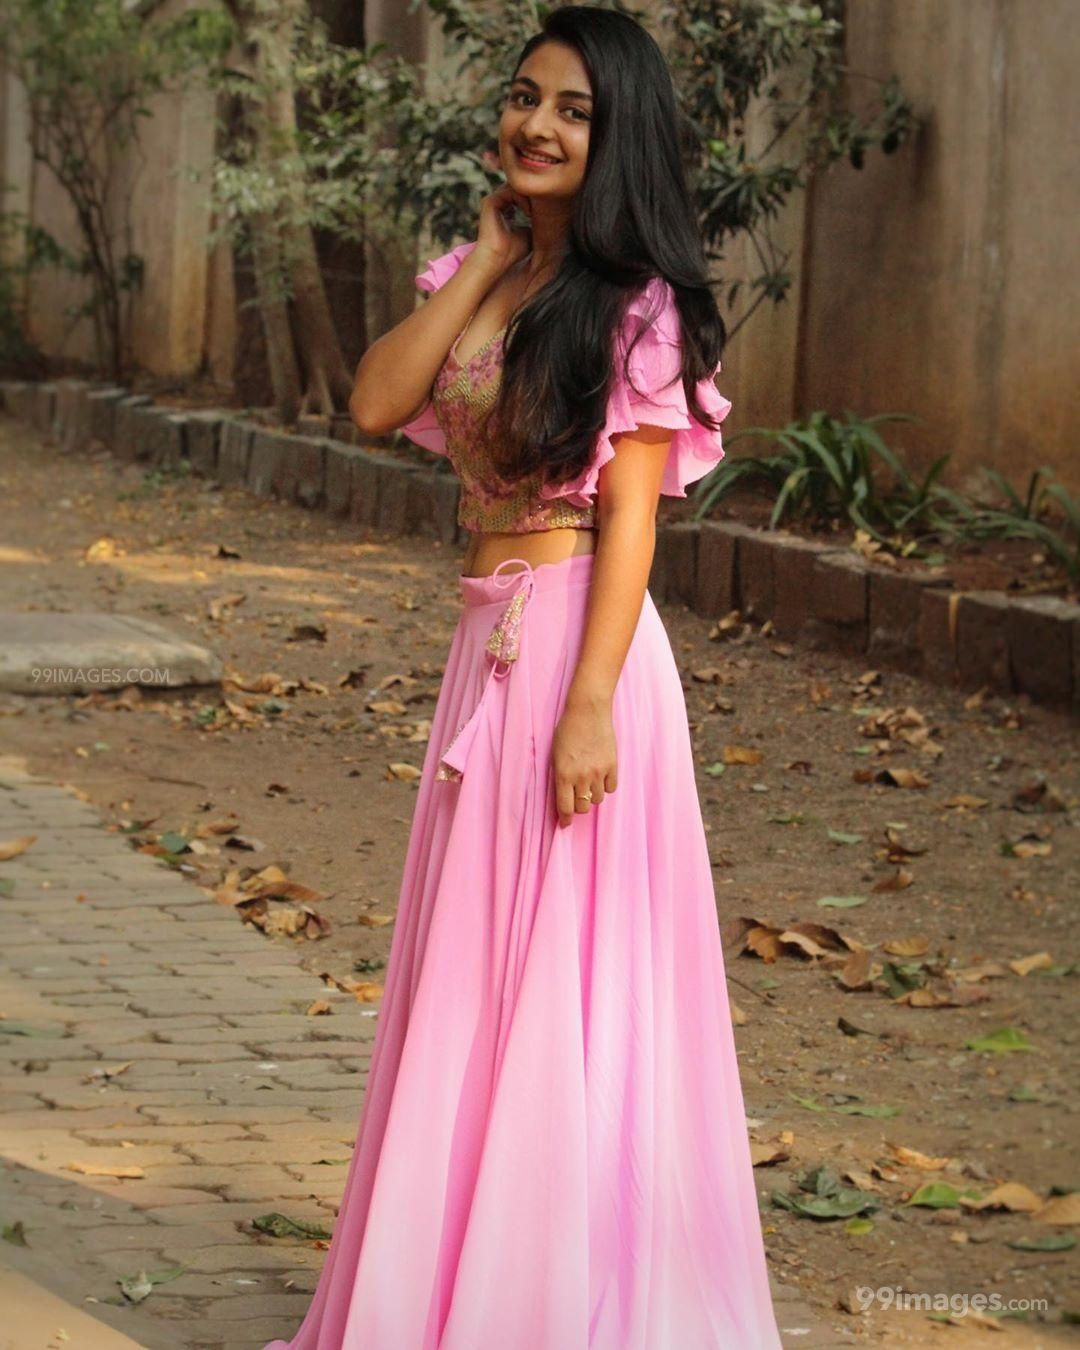 Esther Anil Hot HD Photos, Wallpapers, WhatsApp DP (1080p) (509531) - Esther Anil